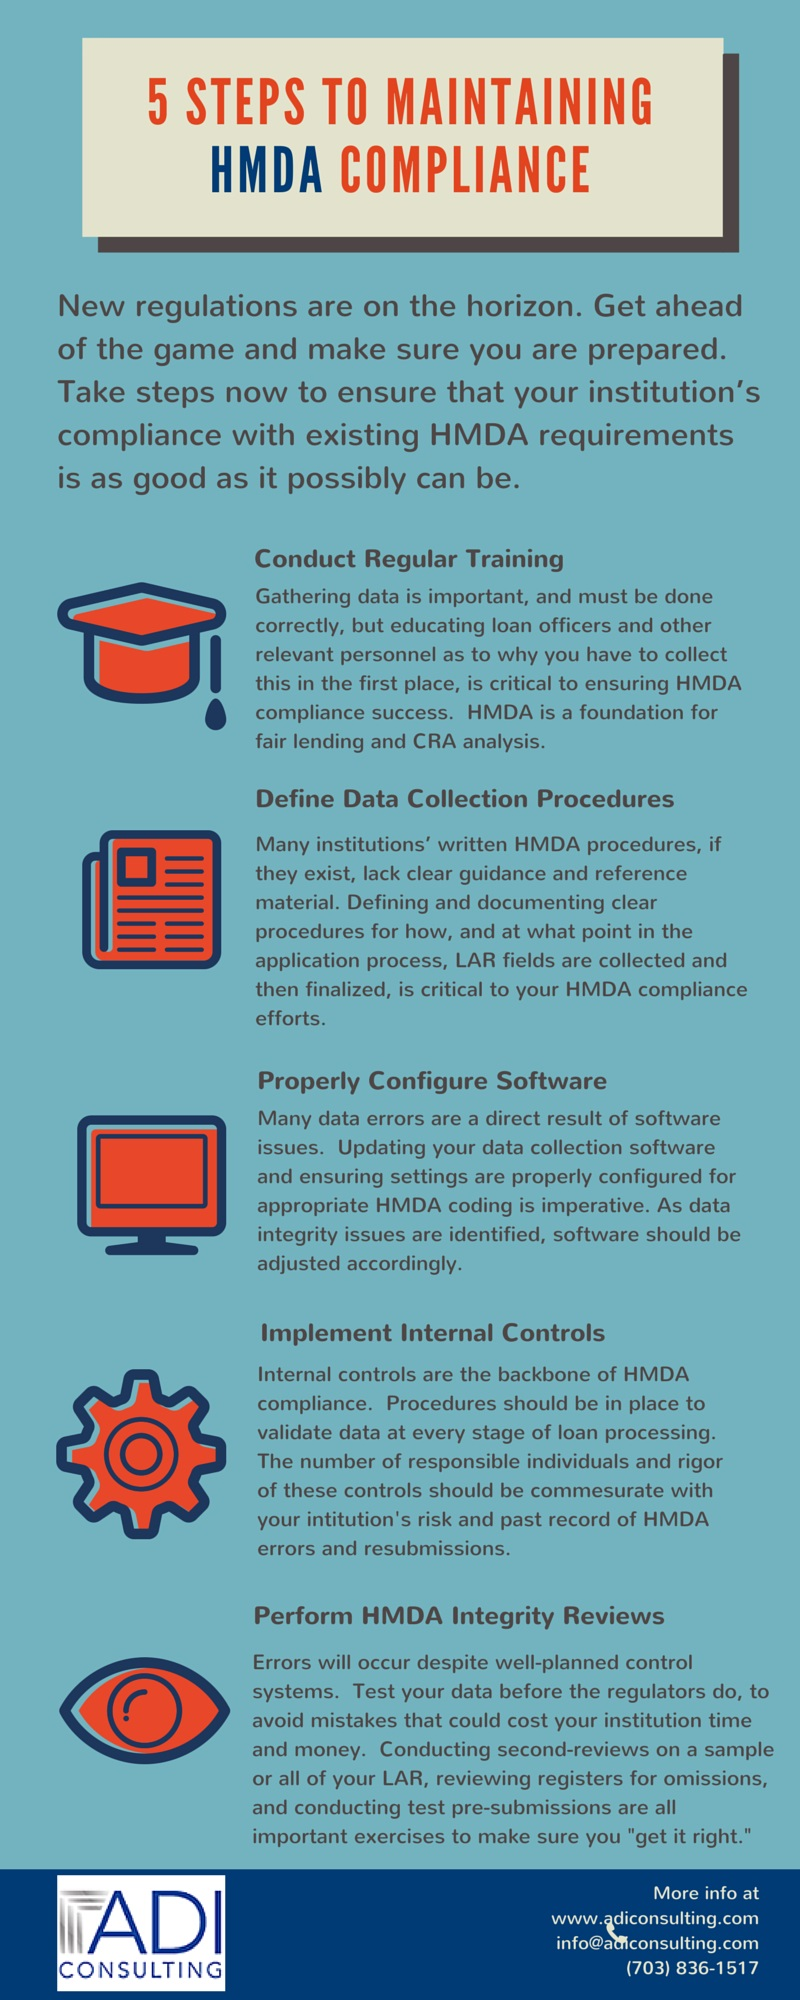 5 Steps to HMDA Compliance